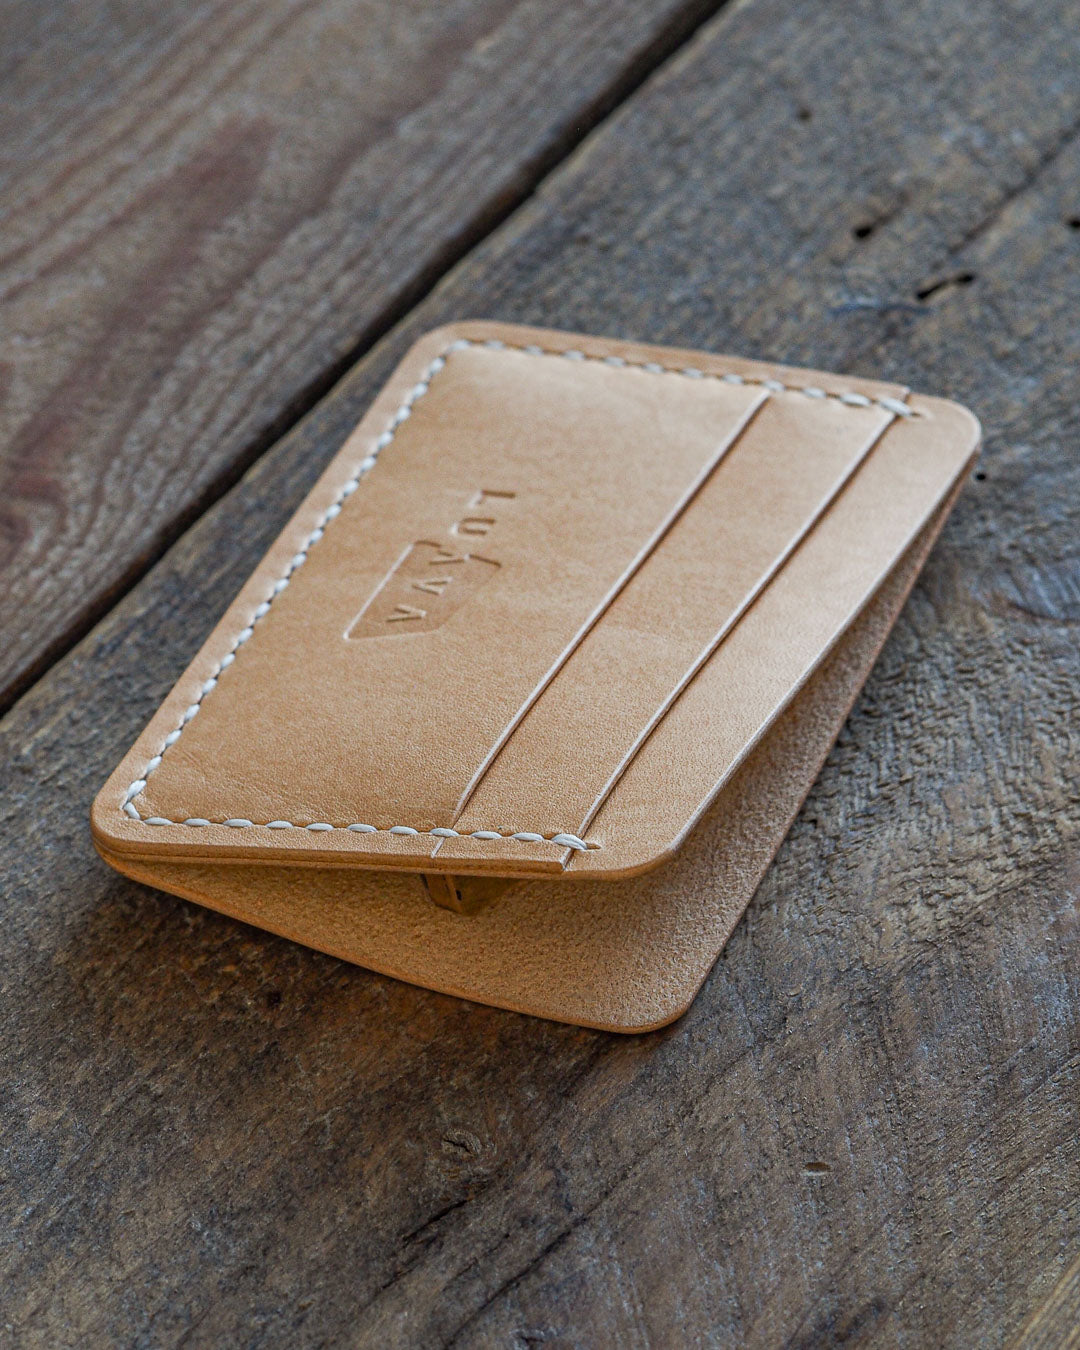 Luava handcrafted handmade leather wallet card holder cardholder maremma nude front open angle